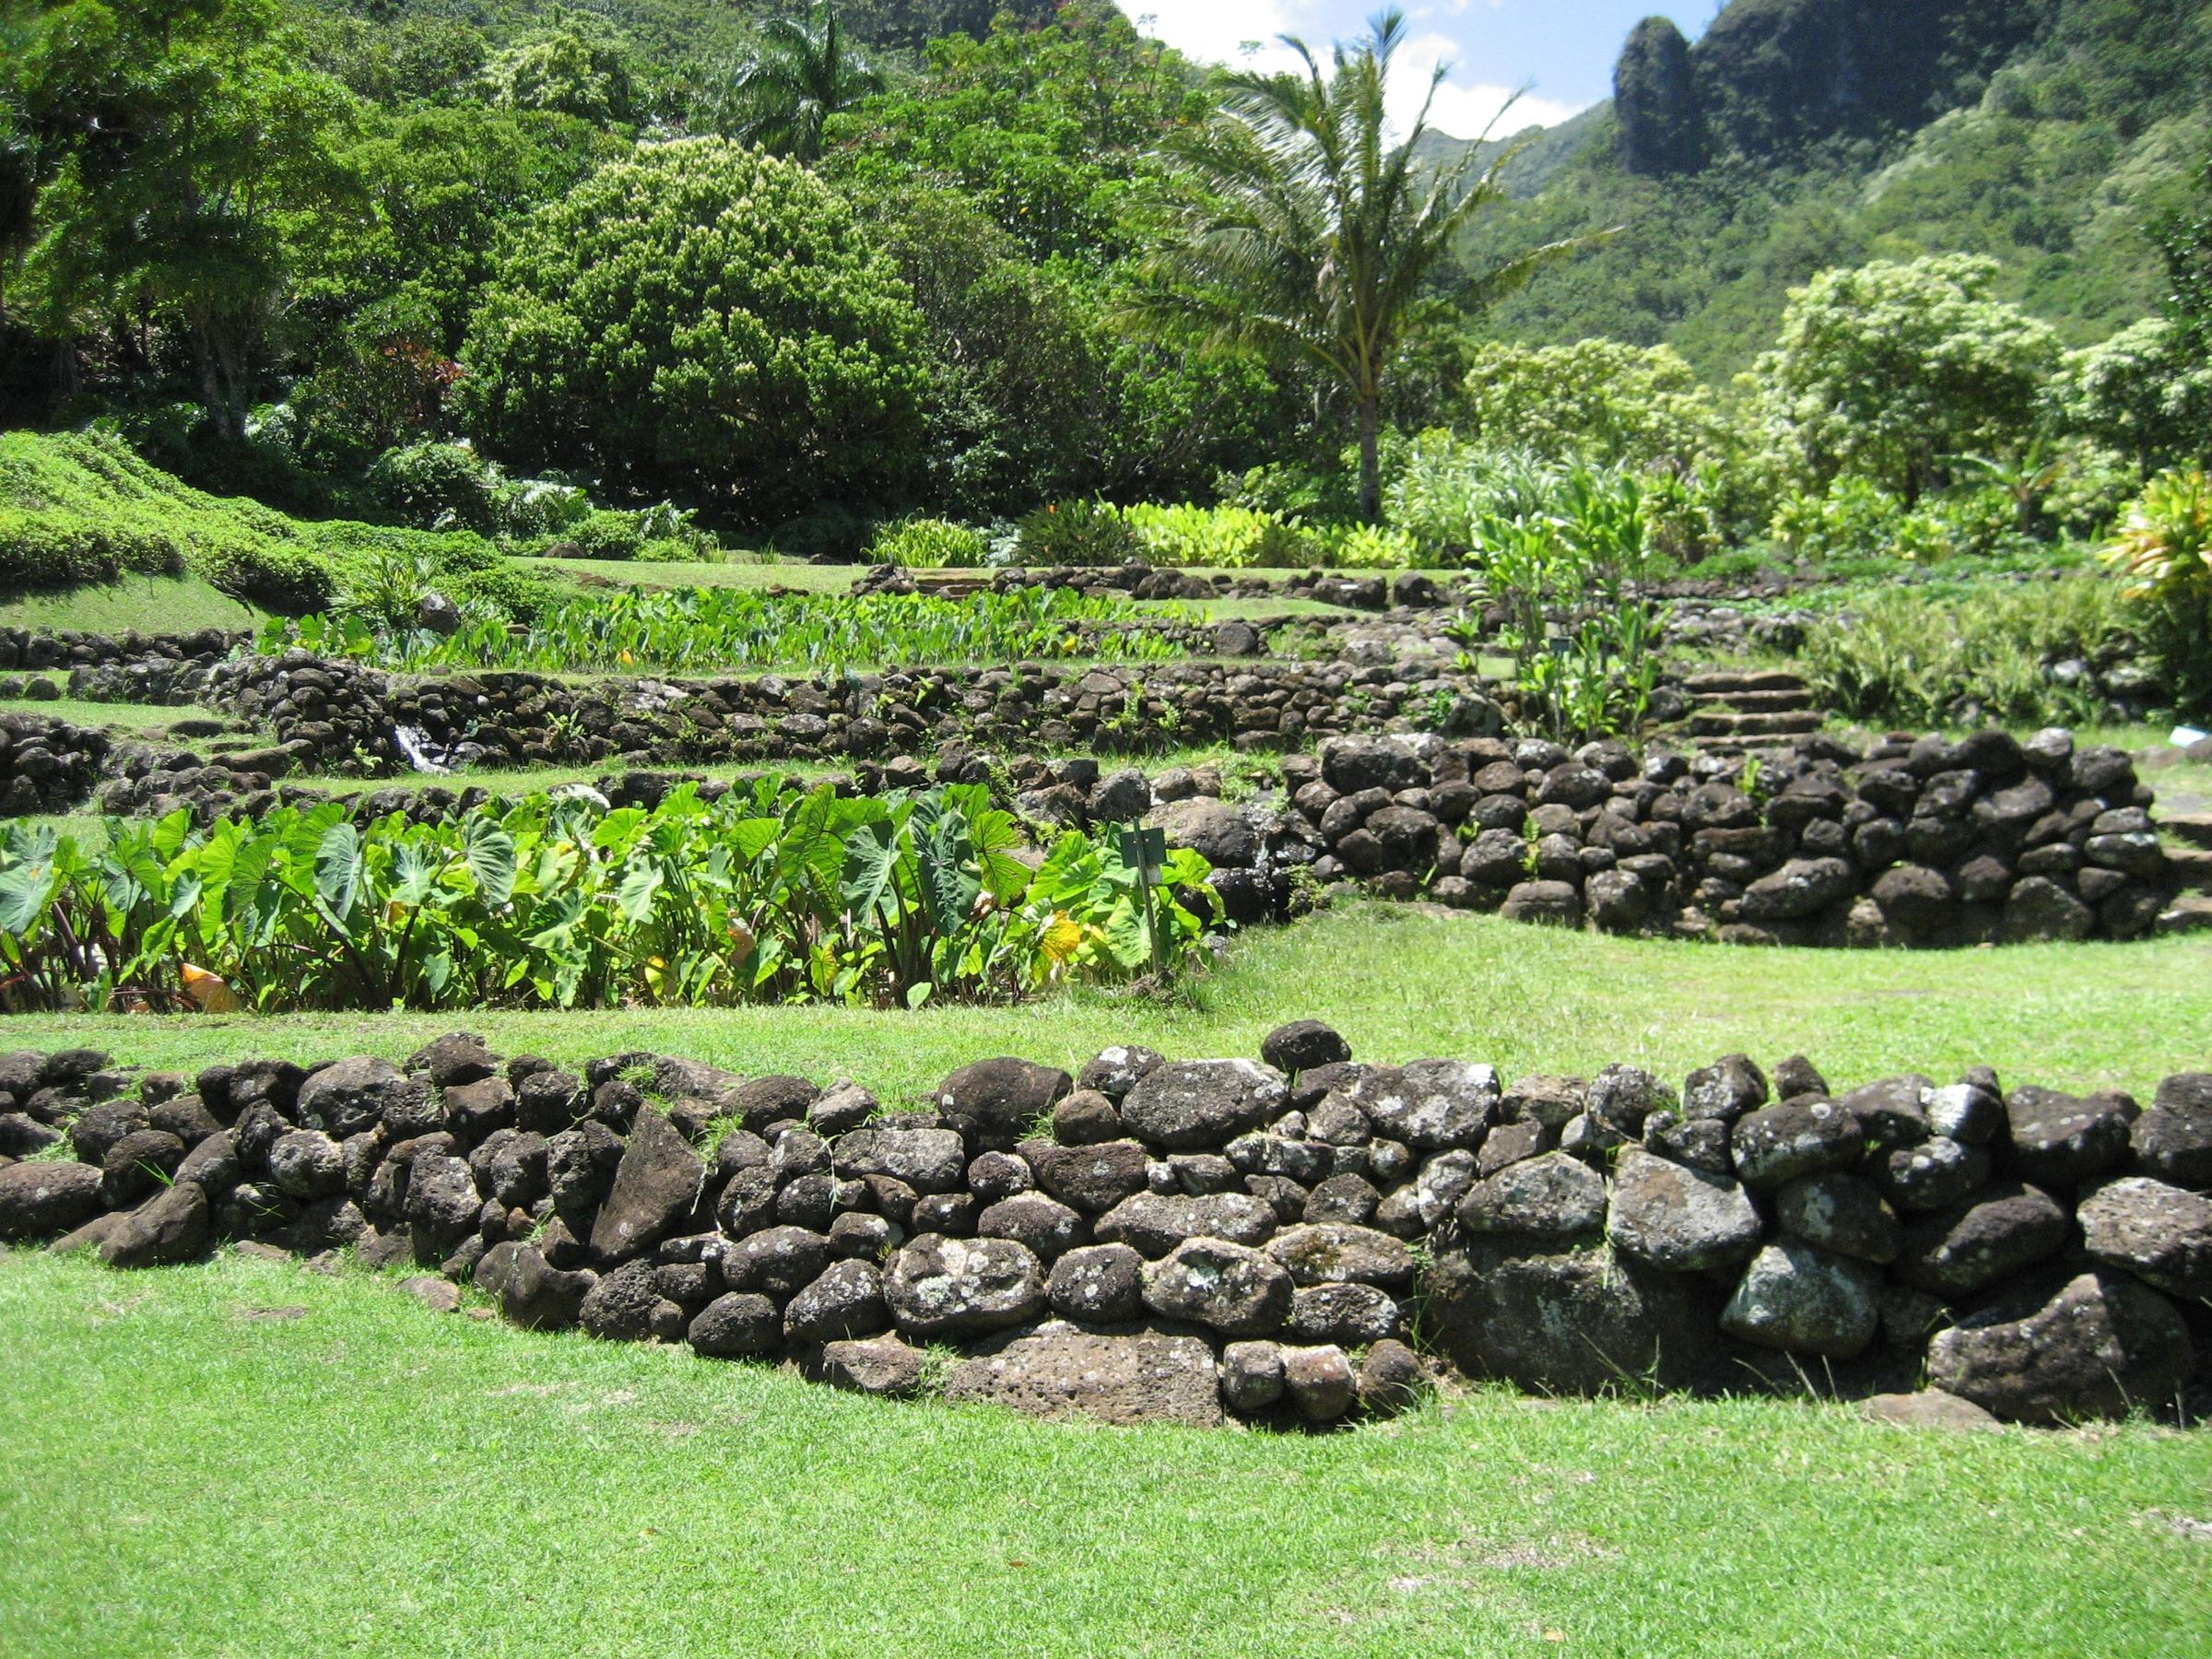 The conversation thursday november 3rd 2016 hawaii for Terrace farming meaning